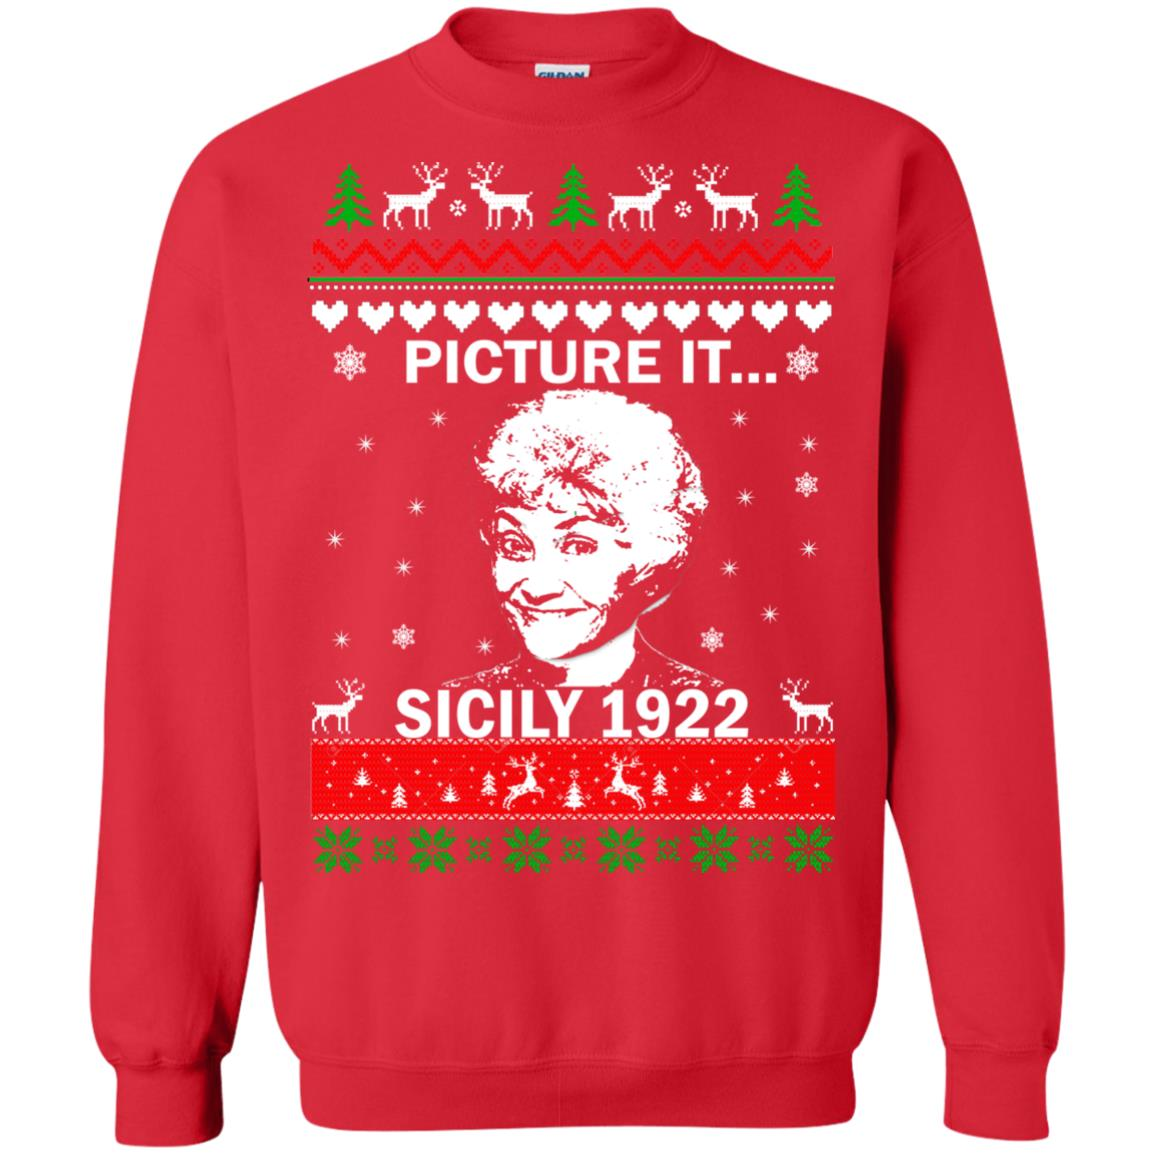 image 719 - Sophia: Picture it! Sicily 1922 Christmas Sweater, Long Sleeve